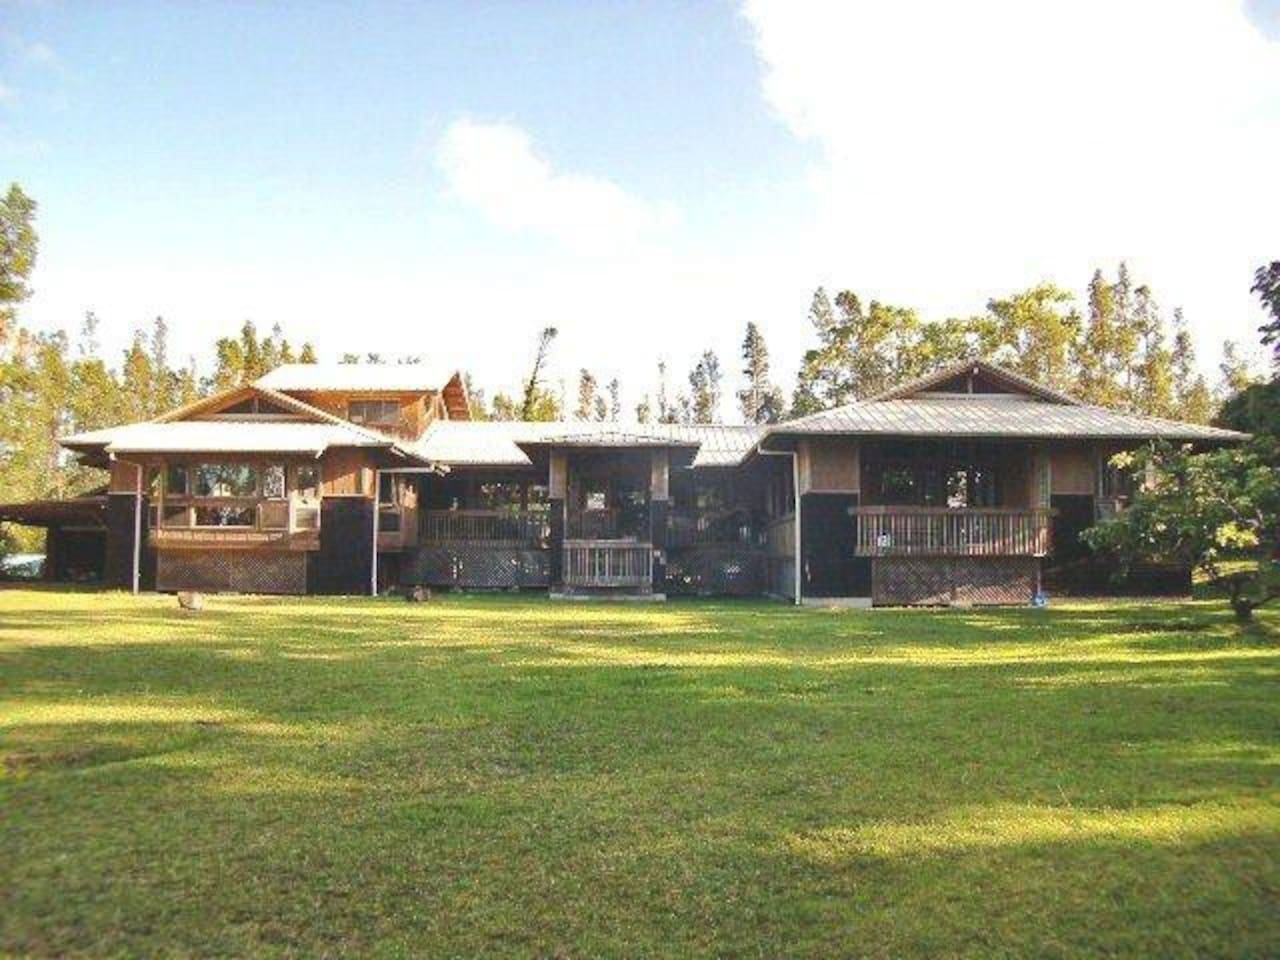 Orchidland Bed and Breakfast